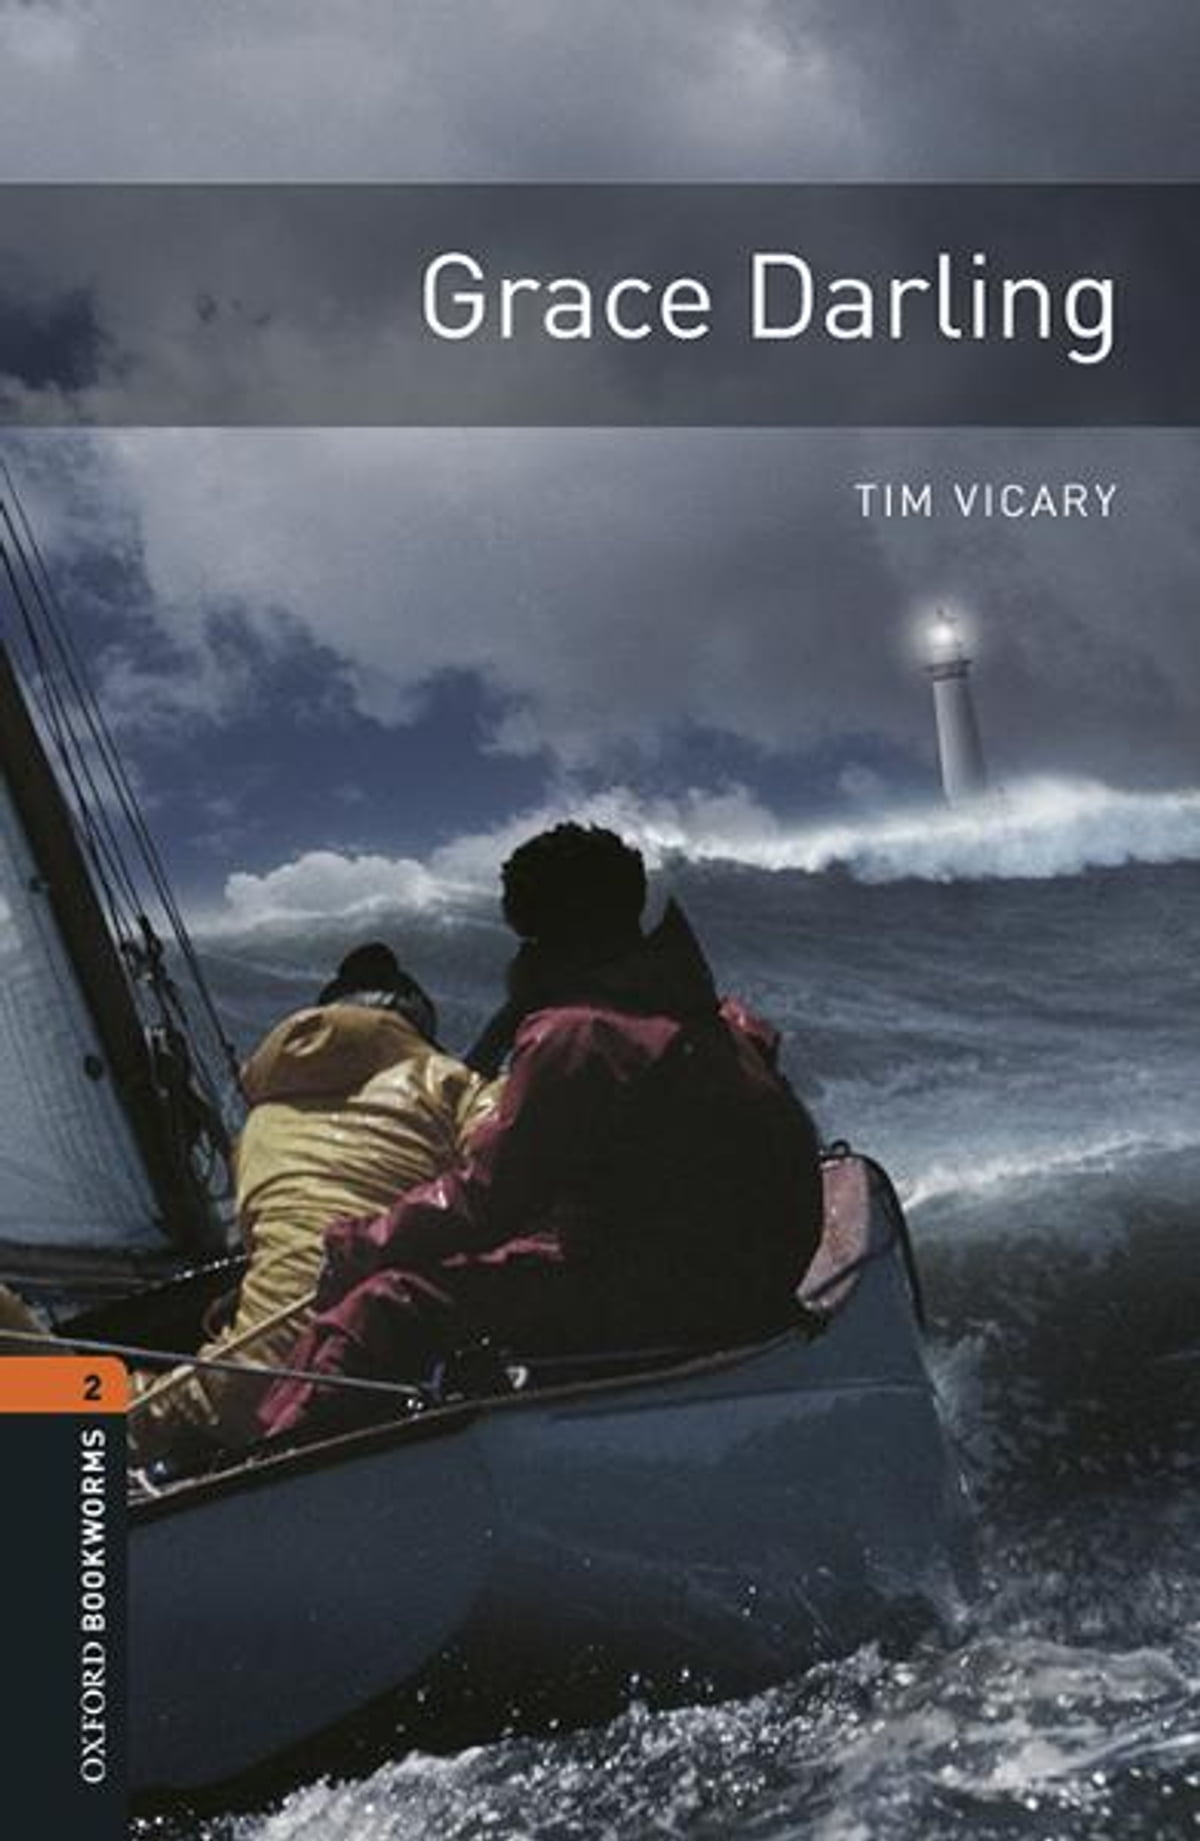 Oxford Bookworms Library Grace Darling Level 2 Oxford Bookworms Library Ebook By